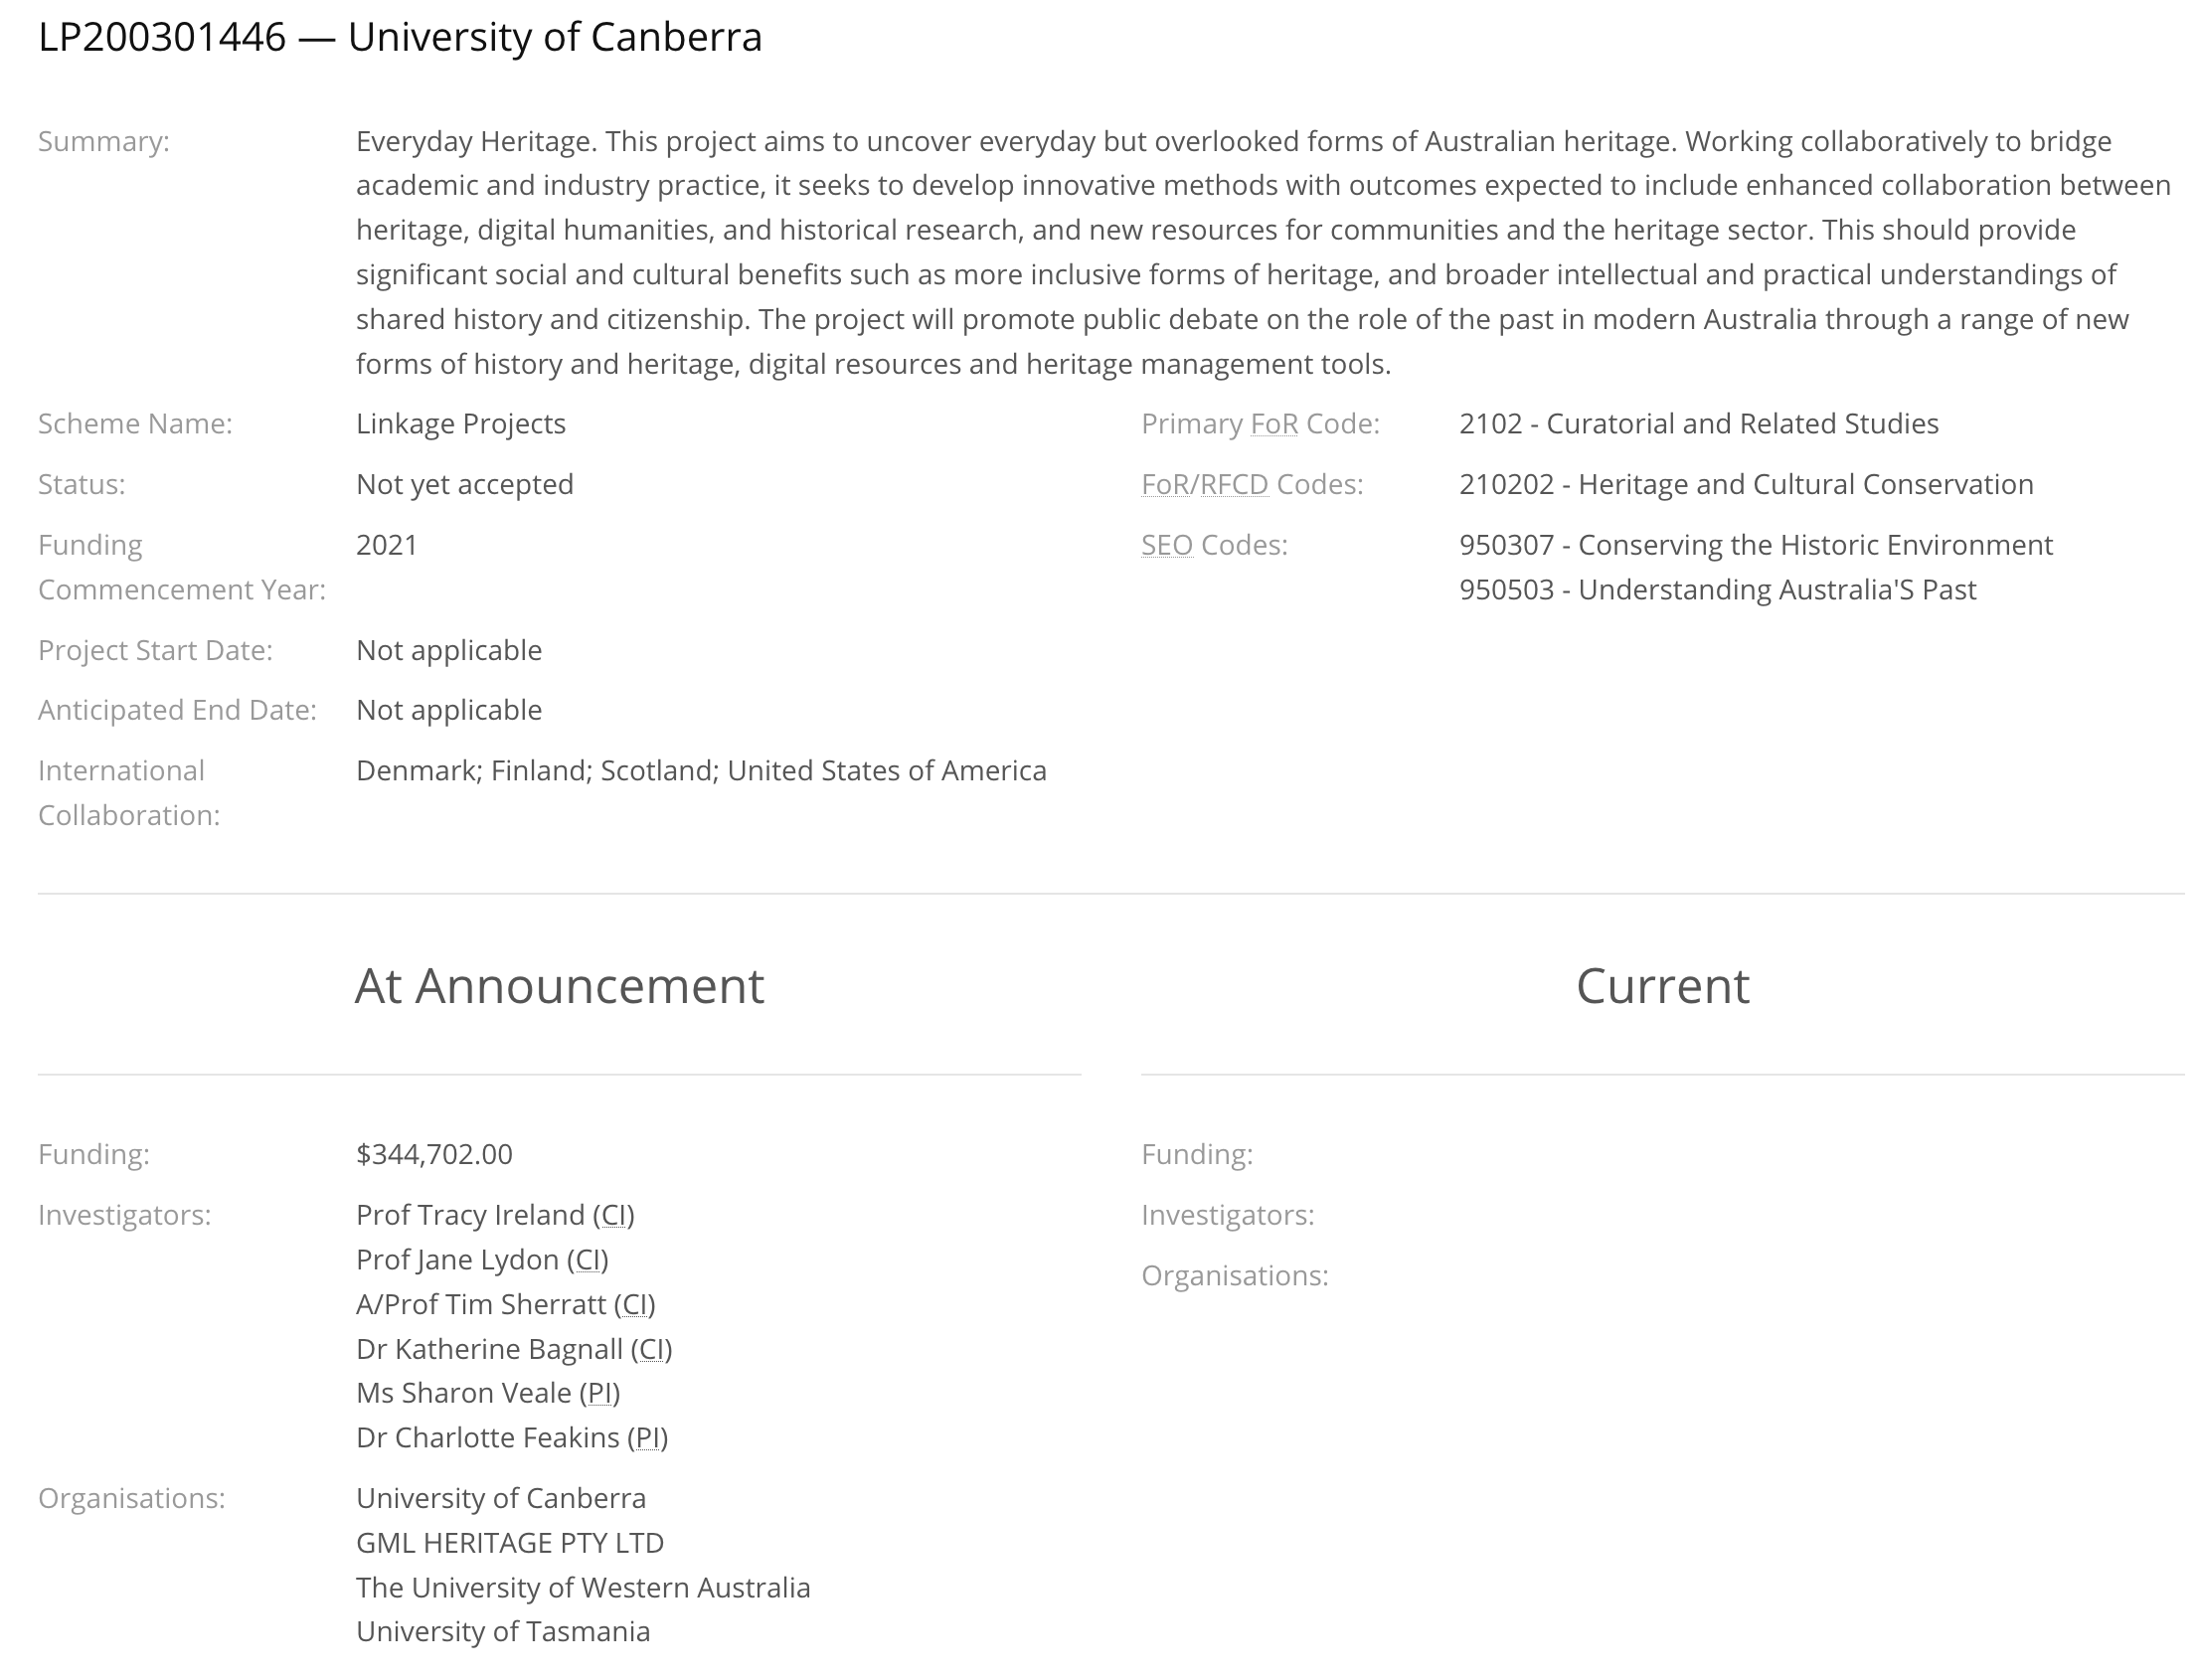 Screen capture of project details in ARC grants database